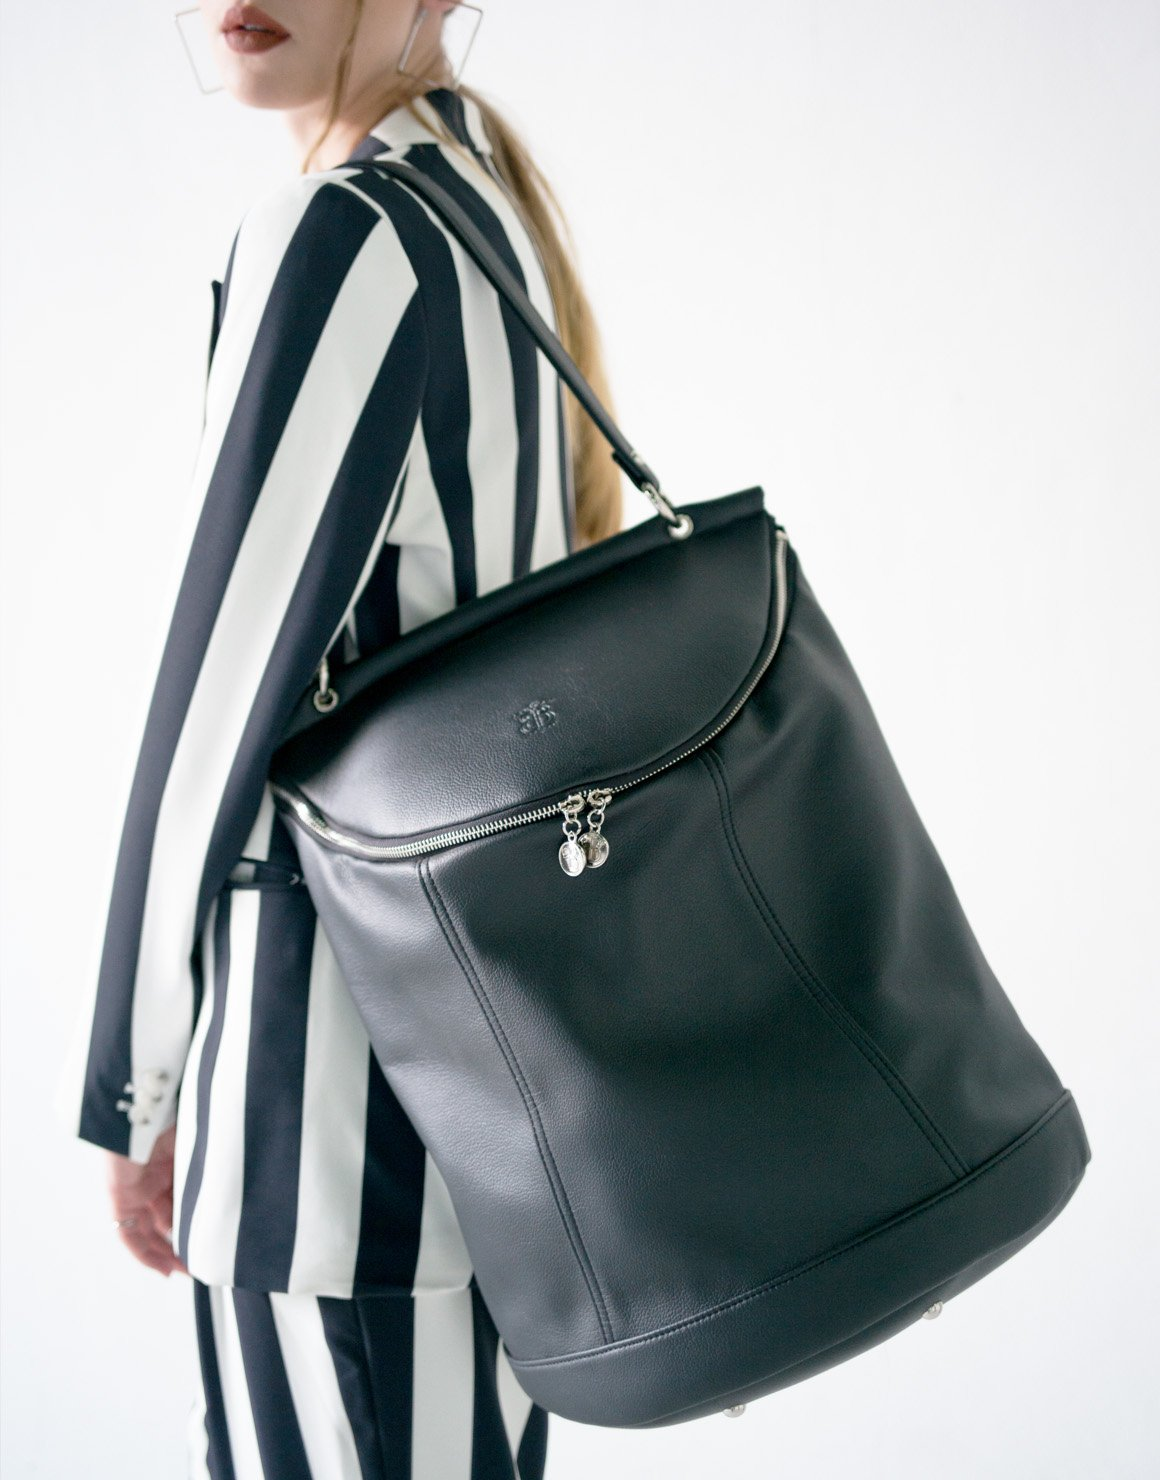 Demilune Backpack by Borboleta